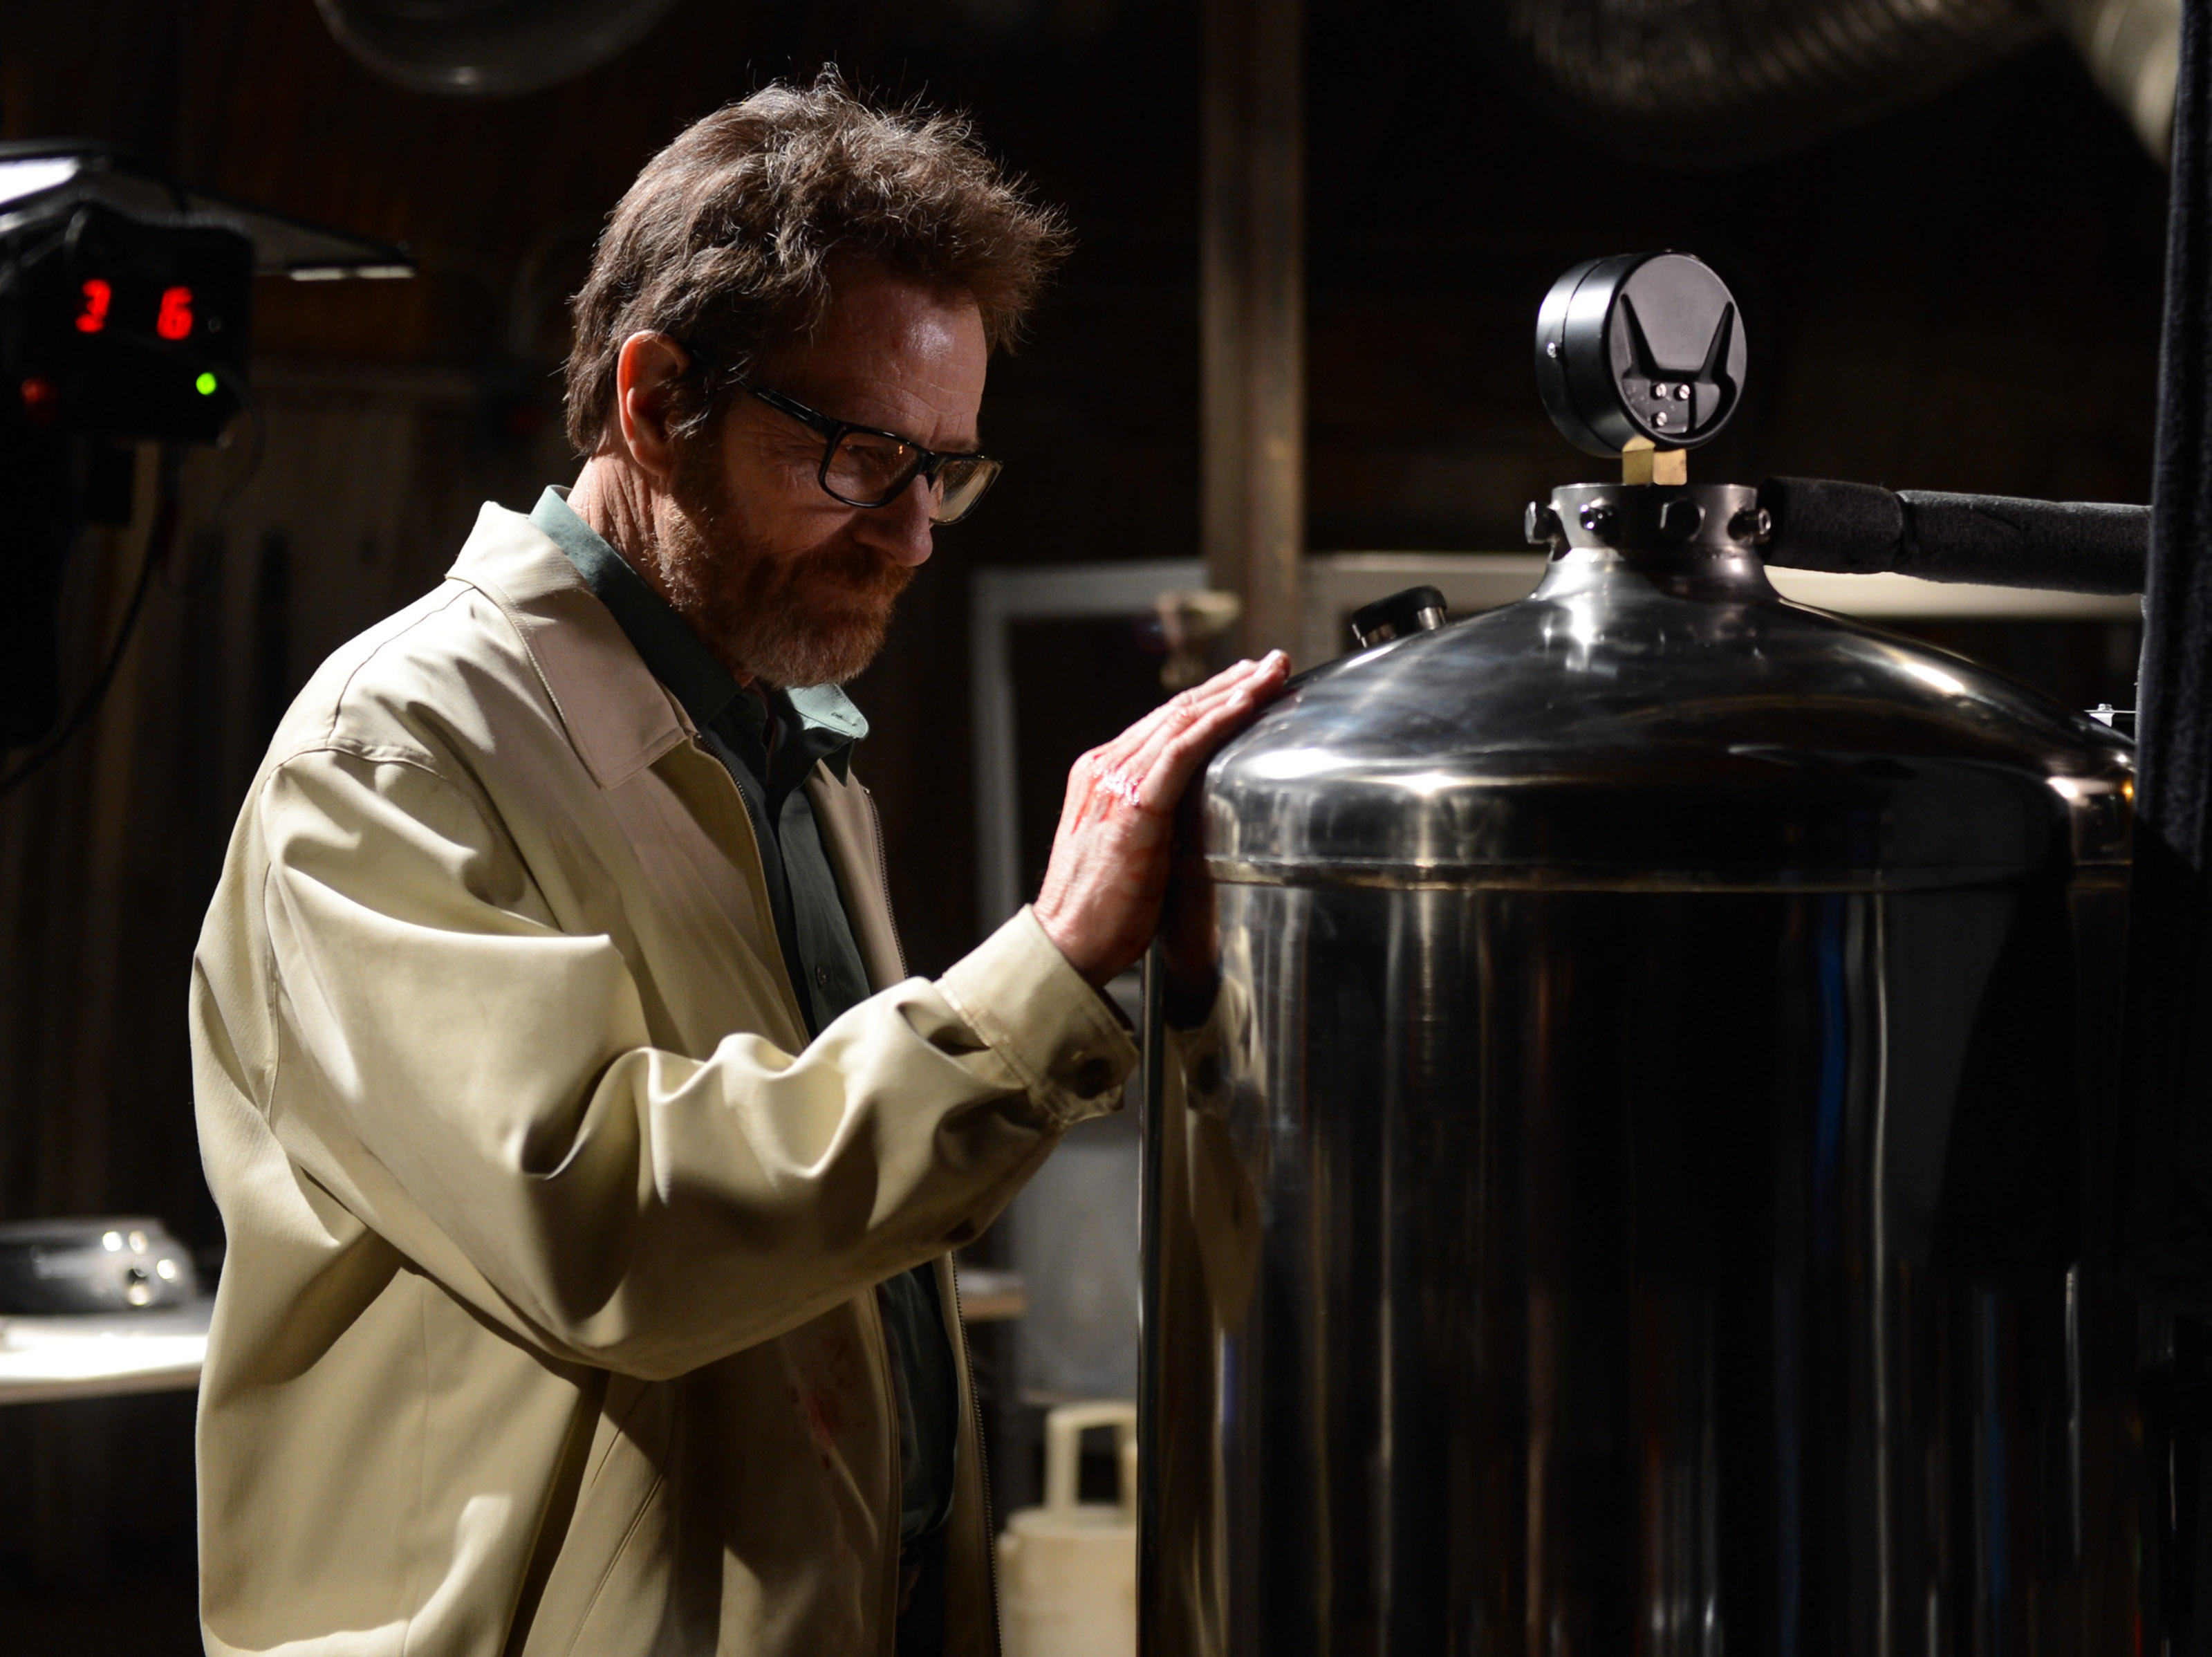 Walter White (Bryan Cranston) fondly runs his hand over a piece of meth-making equipment in the 'Breaking Bad' finale